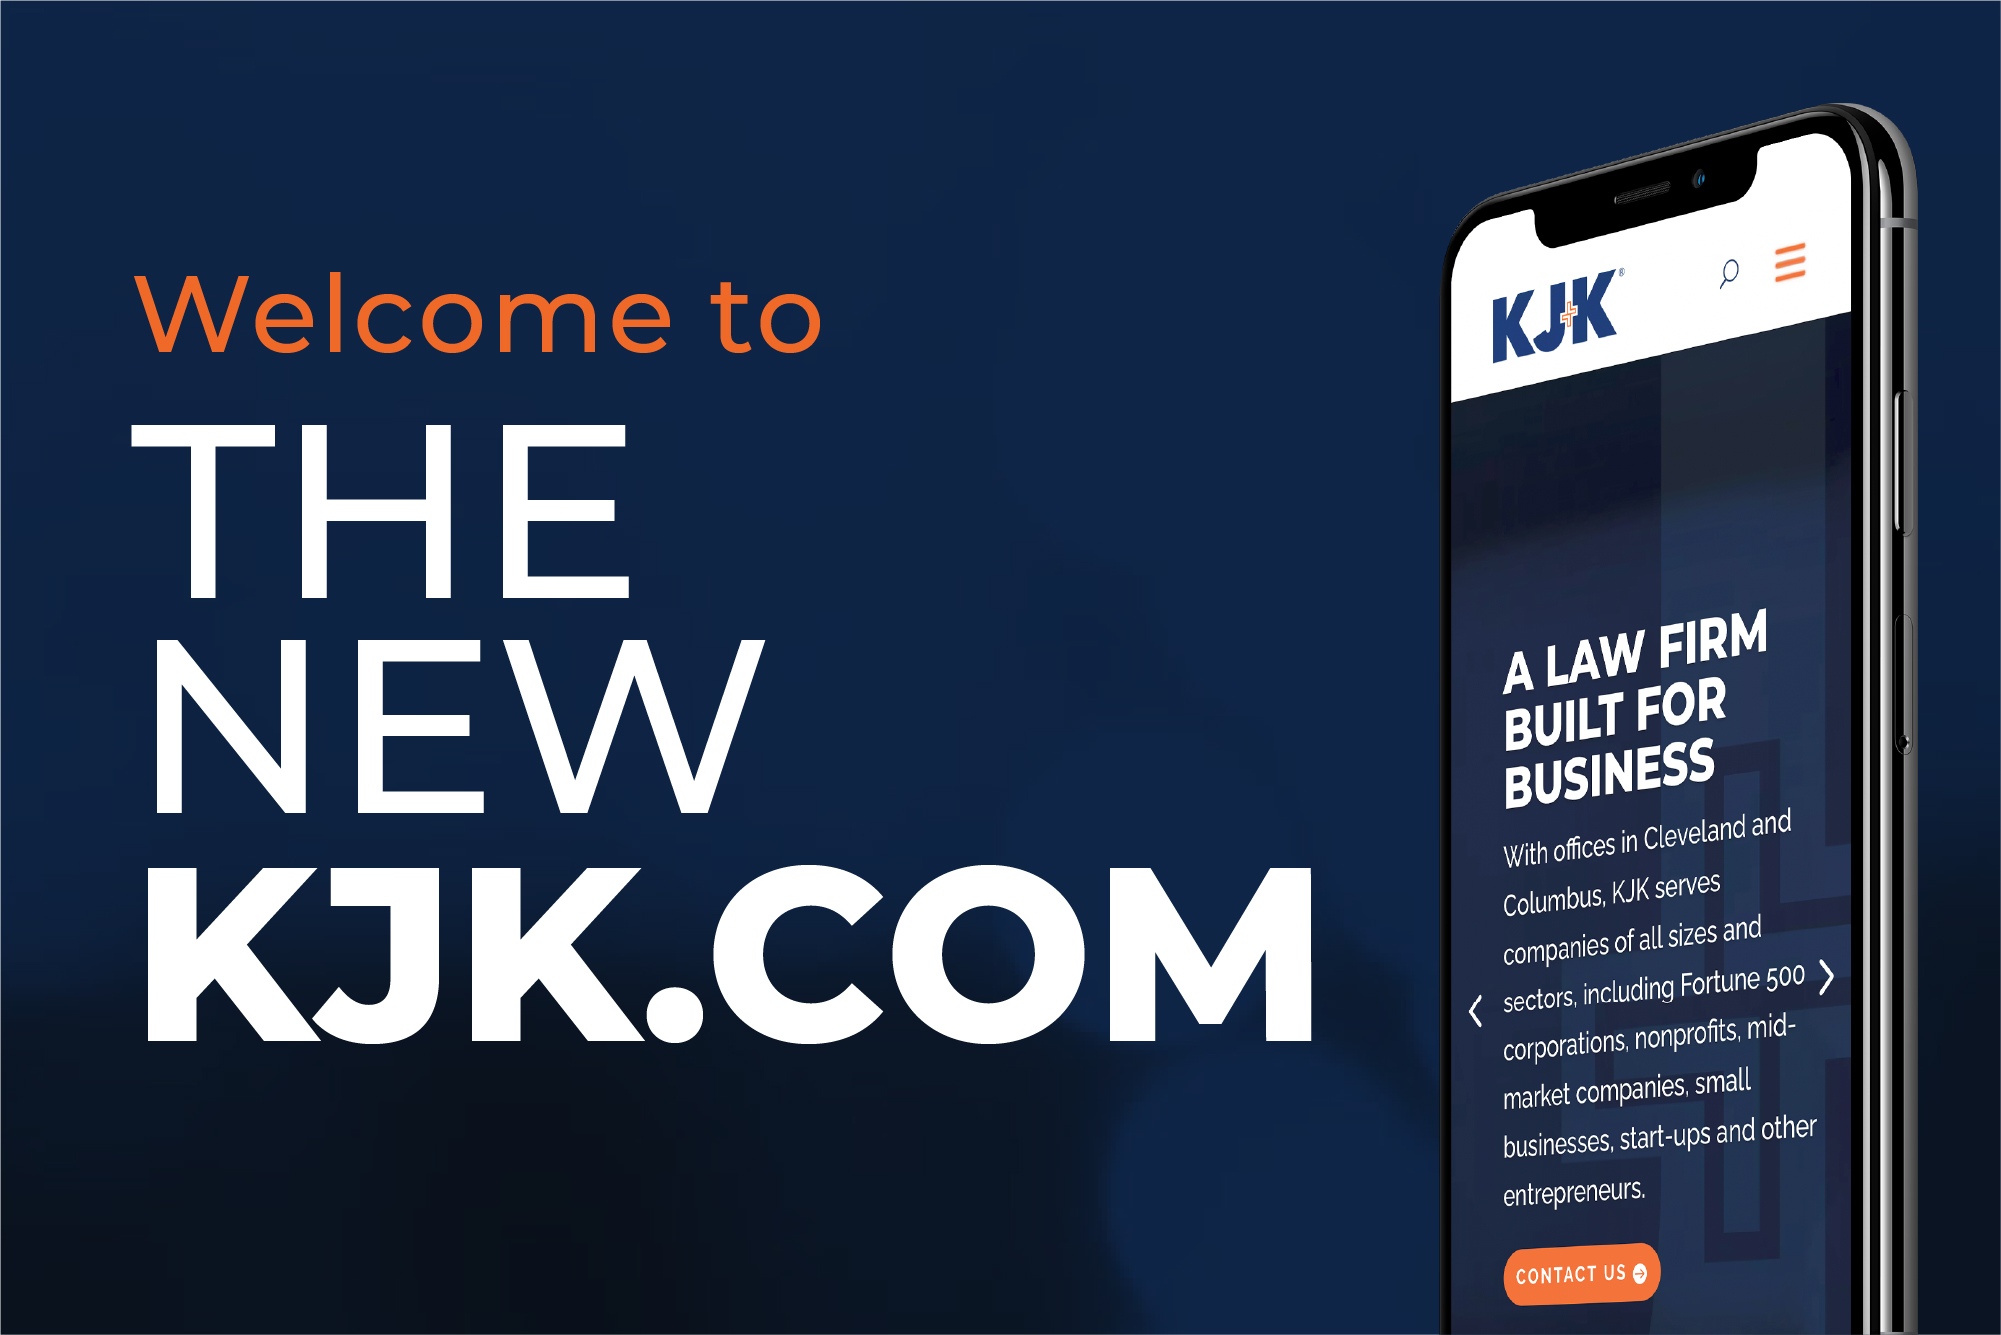 welcome to the new kjk.com